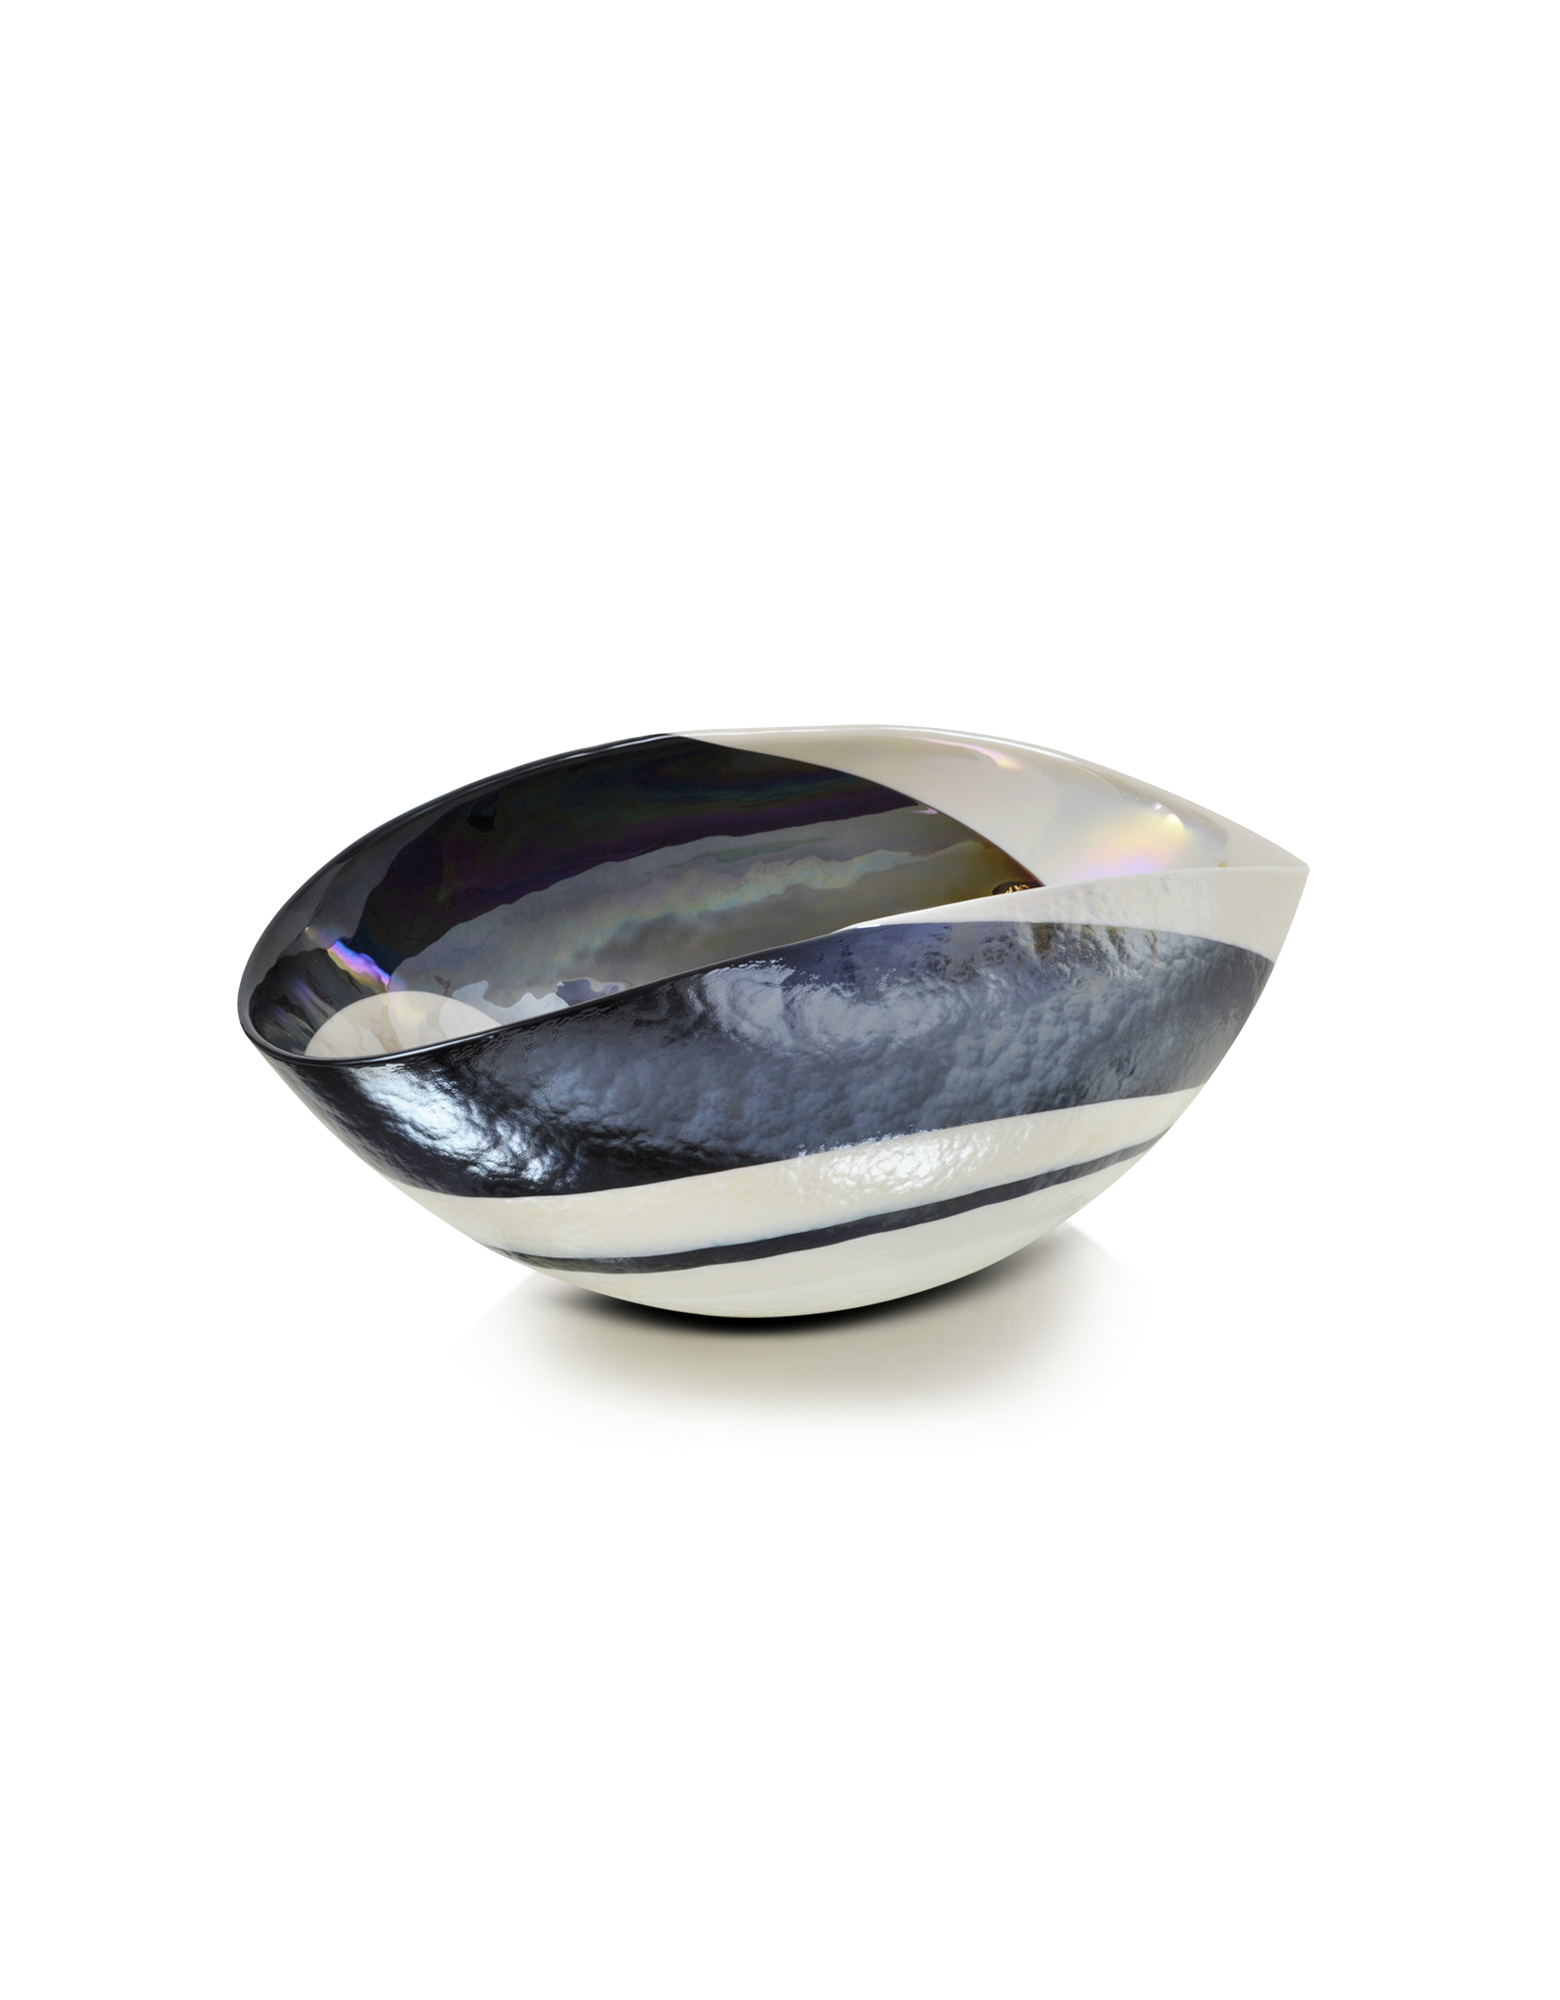 Image of Cartoccio - Small Black and Mother of Pearl Swirl Murano Glass Folded Bowl